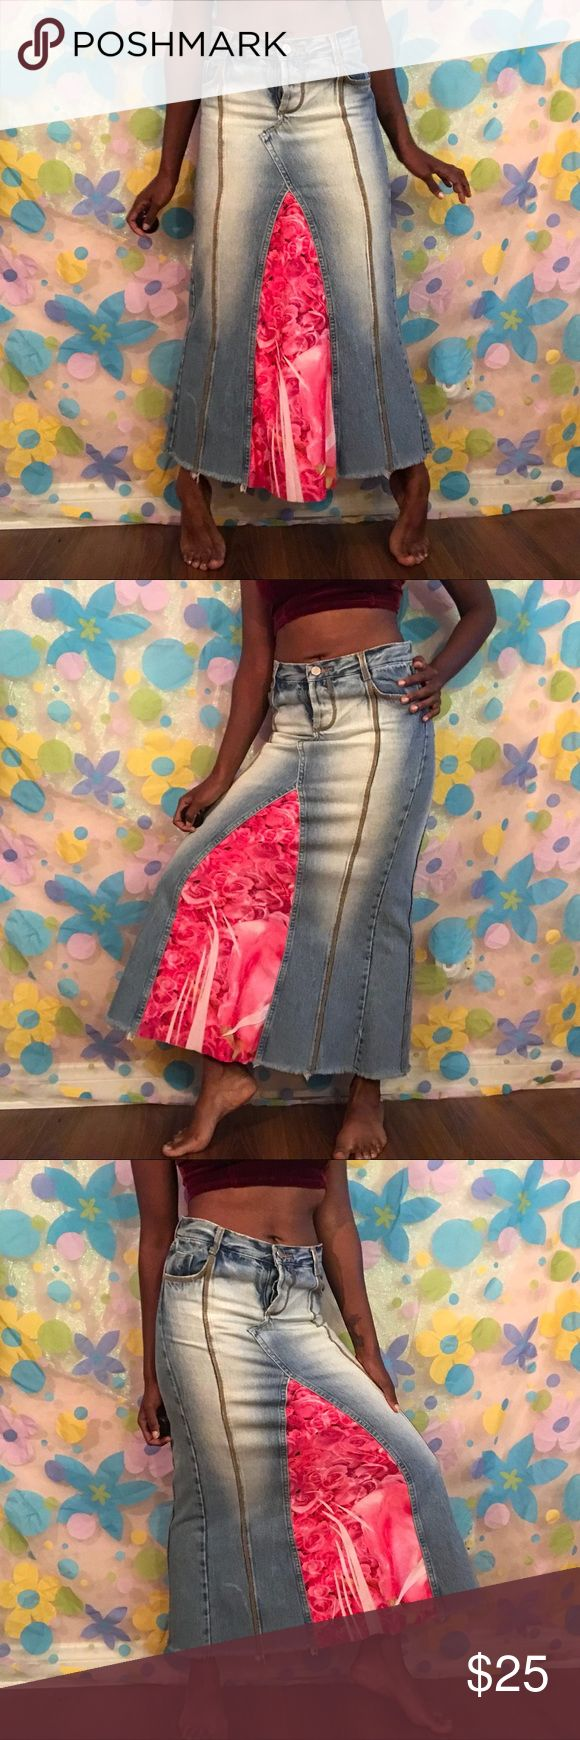 Kosiuko denim maxi skirt need buttons small 3/4 Found this @kosiukooficial skirt! Long jean skirt with soft material in the middle. 🌹🌷🌹🌷 NEEDS NEW BUTTONS!! Size small fits like a 3/4.  ! kosiuko Jeans